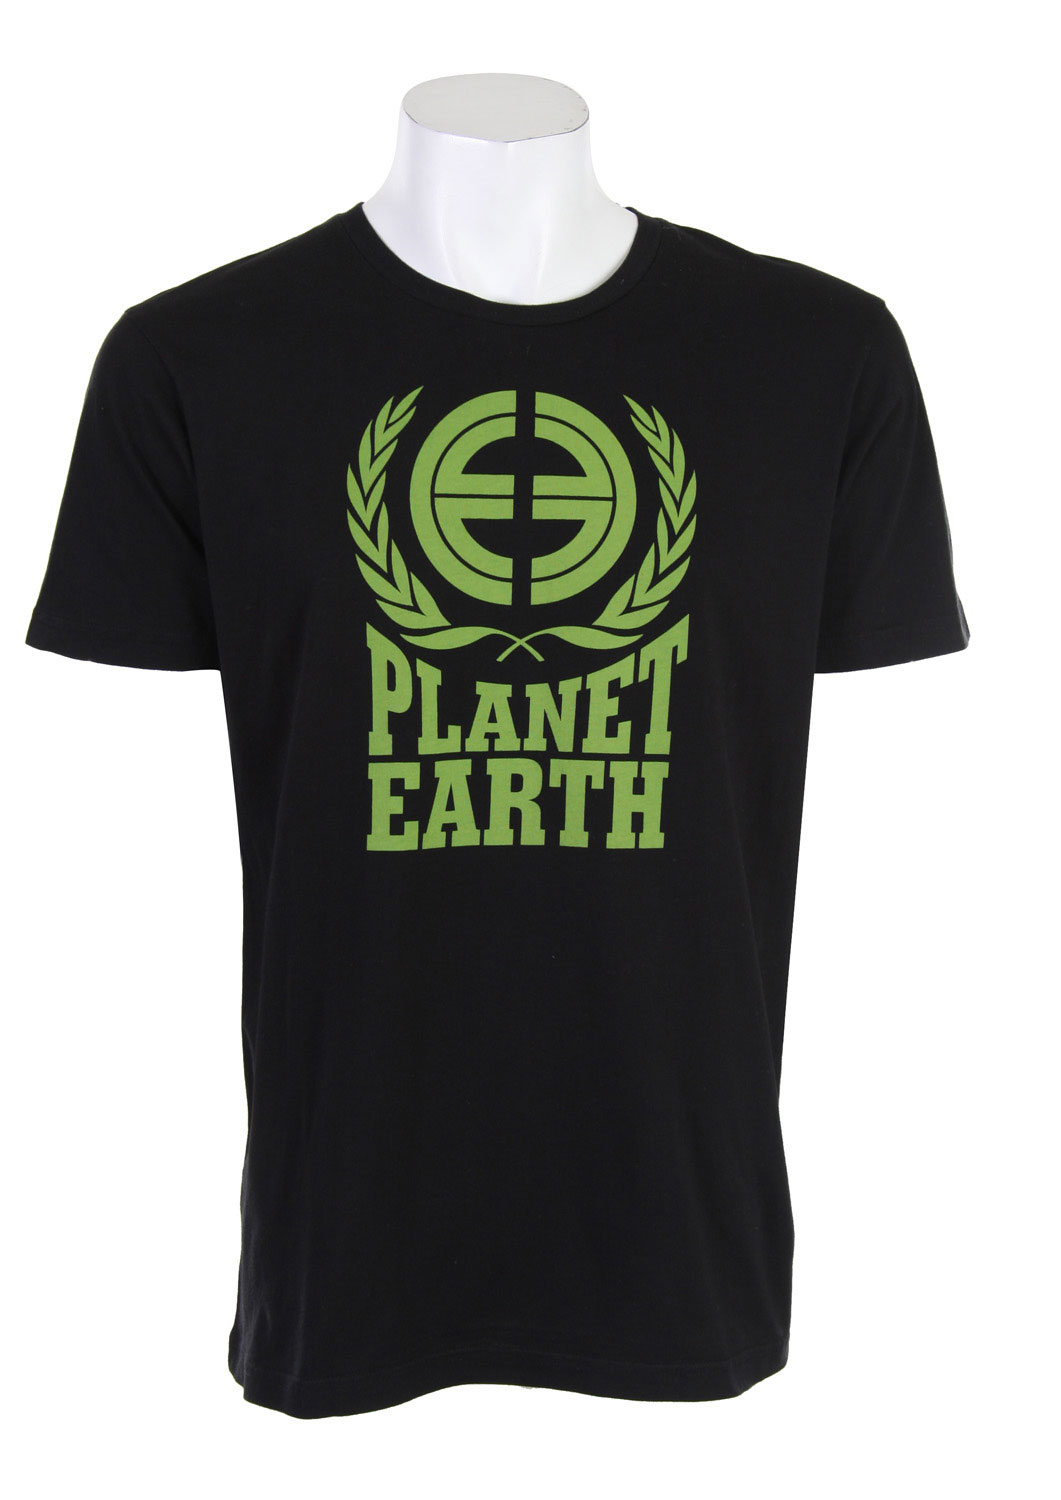 This Planet Earth Fleming T-Shirt is both extremely comfortable and stylish. Its 100% Organic Cotton makes for a comfortable fit and soft feel. Planet Earth is on of the leading brands in the industry. All of their t-shirts are made from 100% organic cotton. You can expect only the highest of quality from all of their line of products. You will not be disappointed with this t-shirt. Best of all, the price tag is incredibly low!Key Features of the Planet Earth Fleming T-Shirt Black: 100% Organic Cotton - $21.95